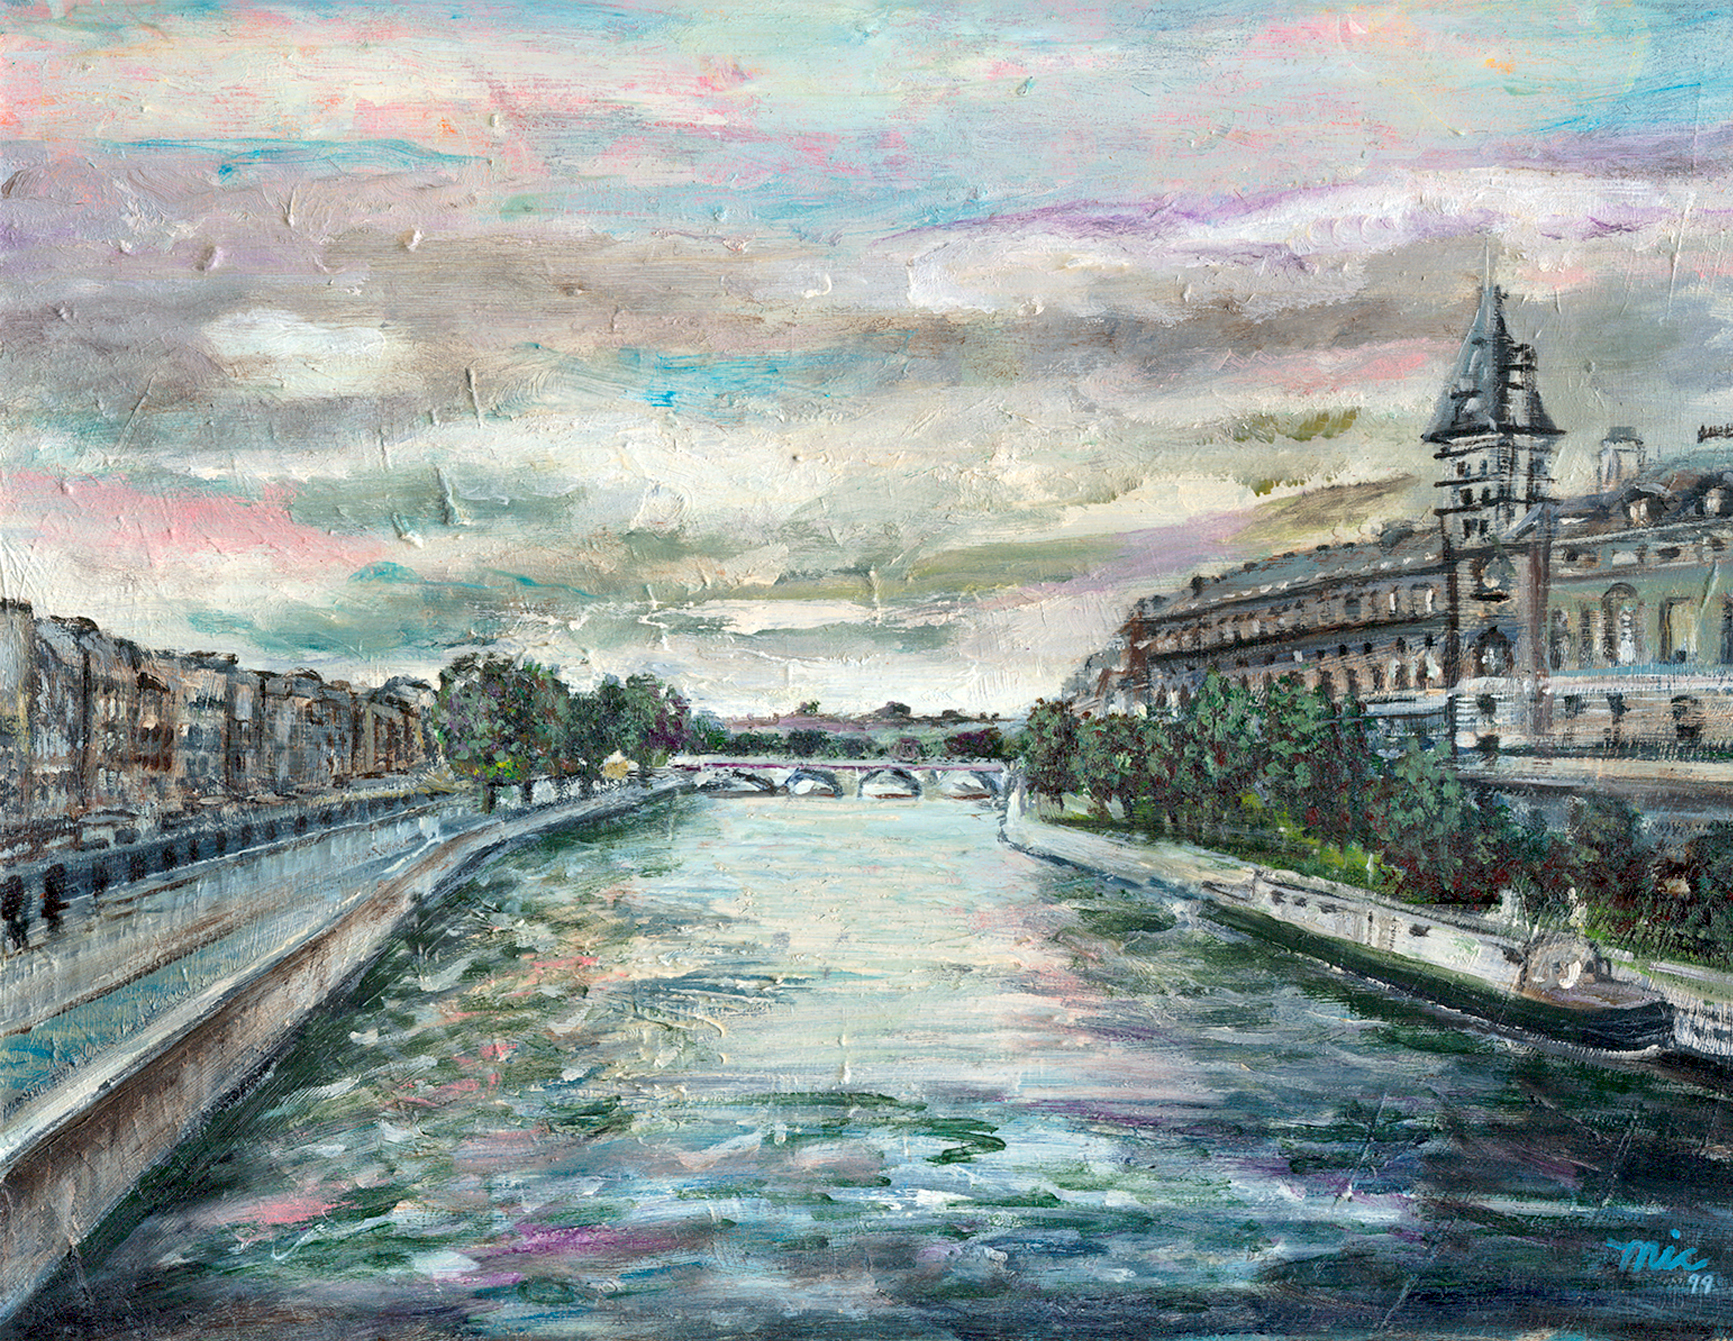 The Seine Paris - Oil on panel, Private collection Judge Curt Bensen and Judge Jane MarkeyGiclee Limited Edition and canvas prints are available. Please visit the prints gallery.